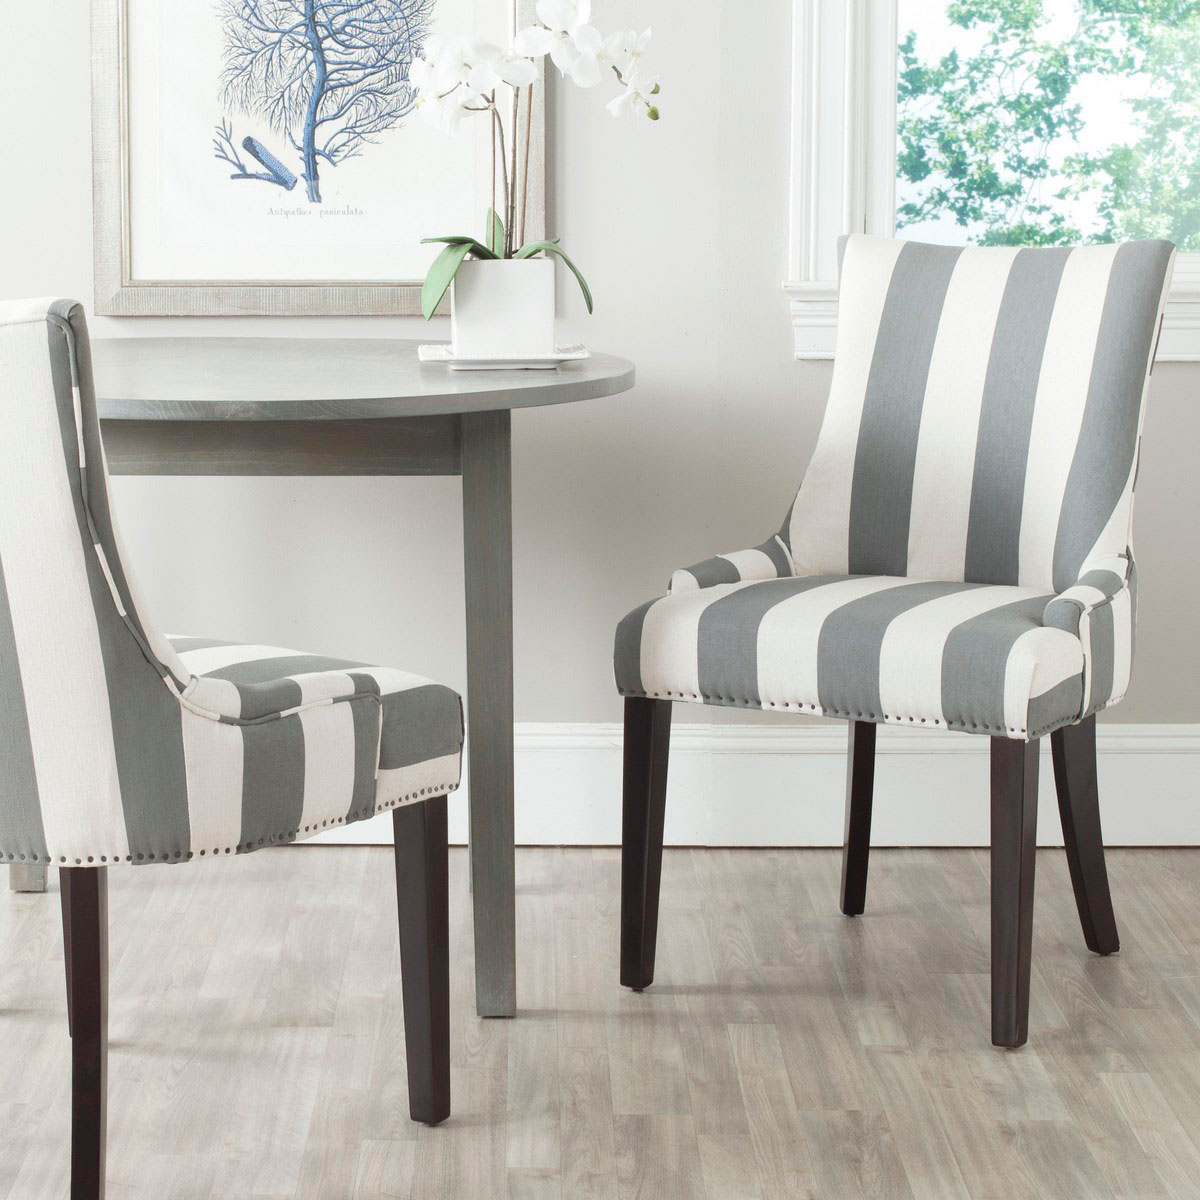 Lester 19 H Awning Stripes Dining Chair Set Of 2 Flat Nail Heads Mcr4709x Set2 Chairs